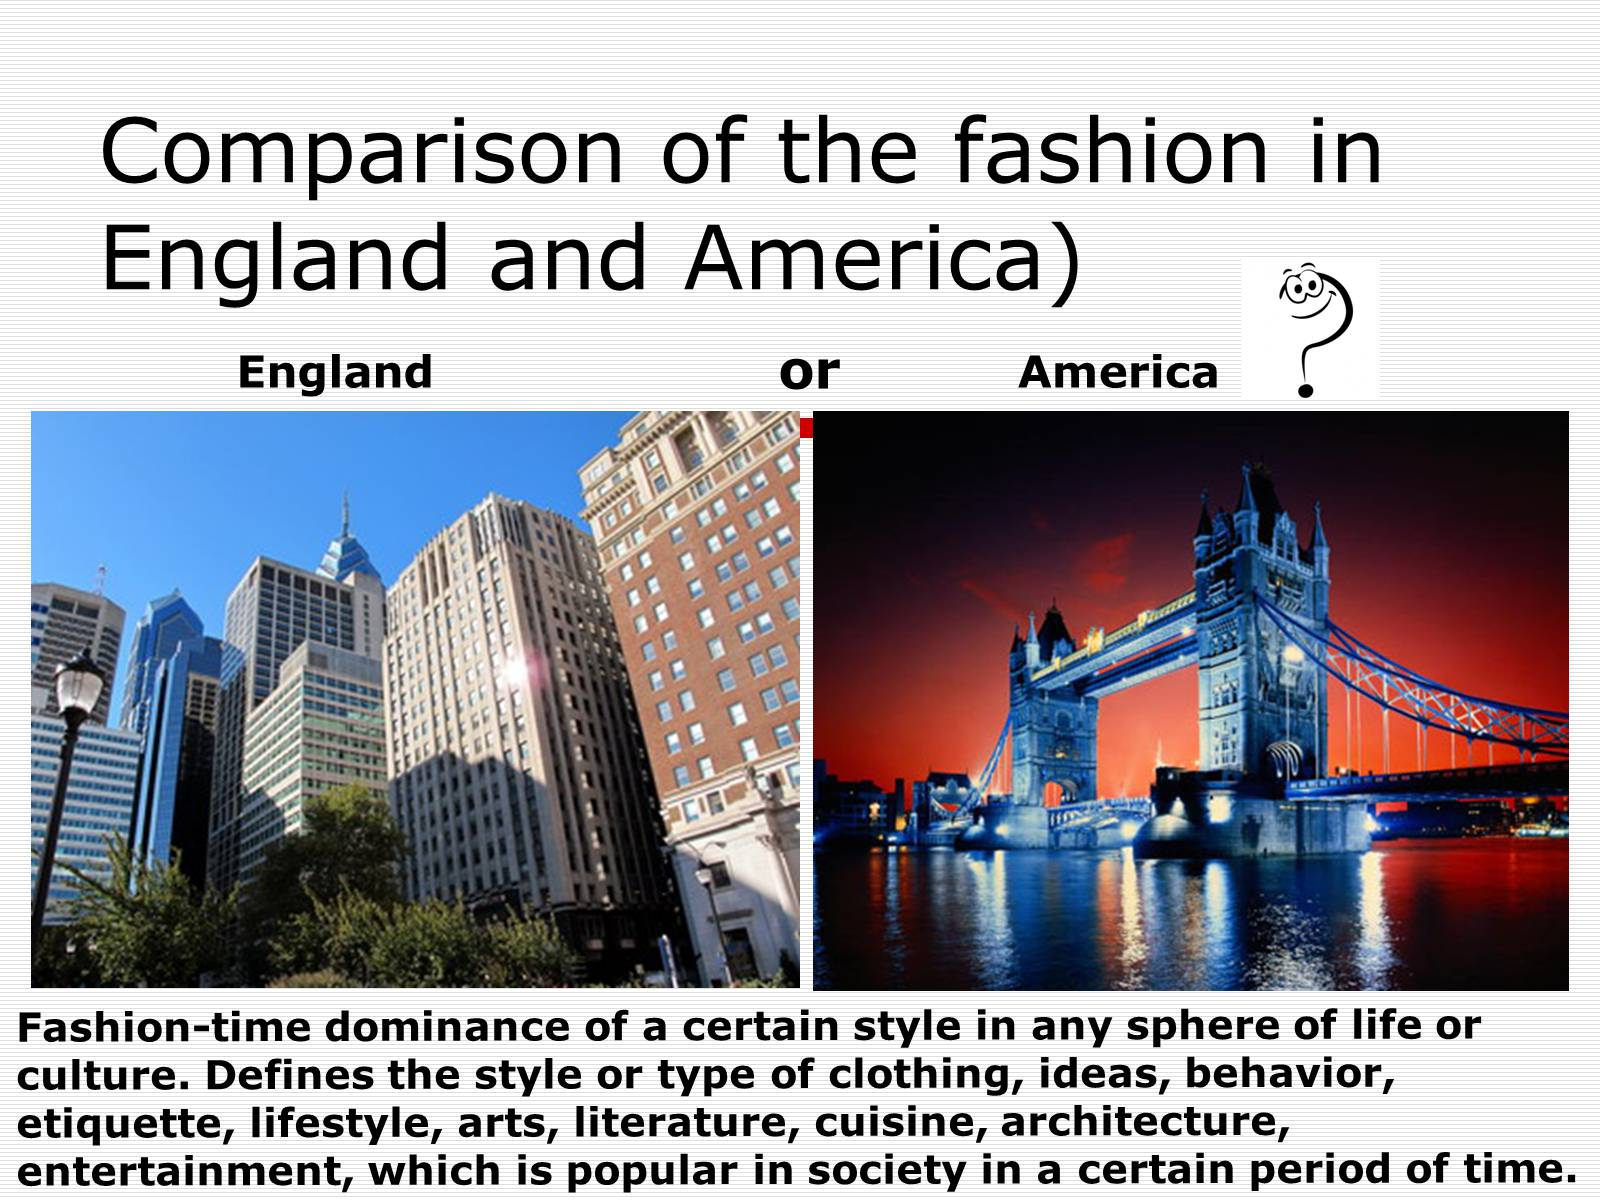 Презентація на тему «Comparison of the fashion in England and America» - Слайд #1